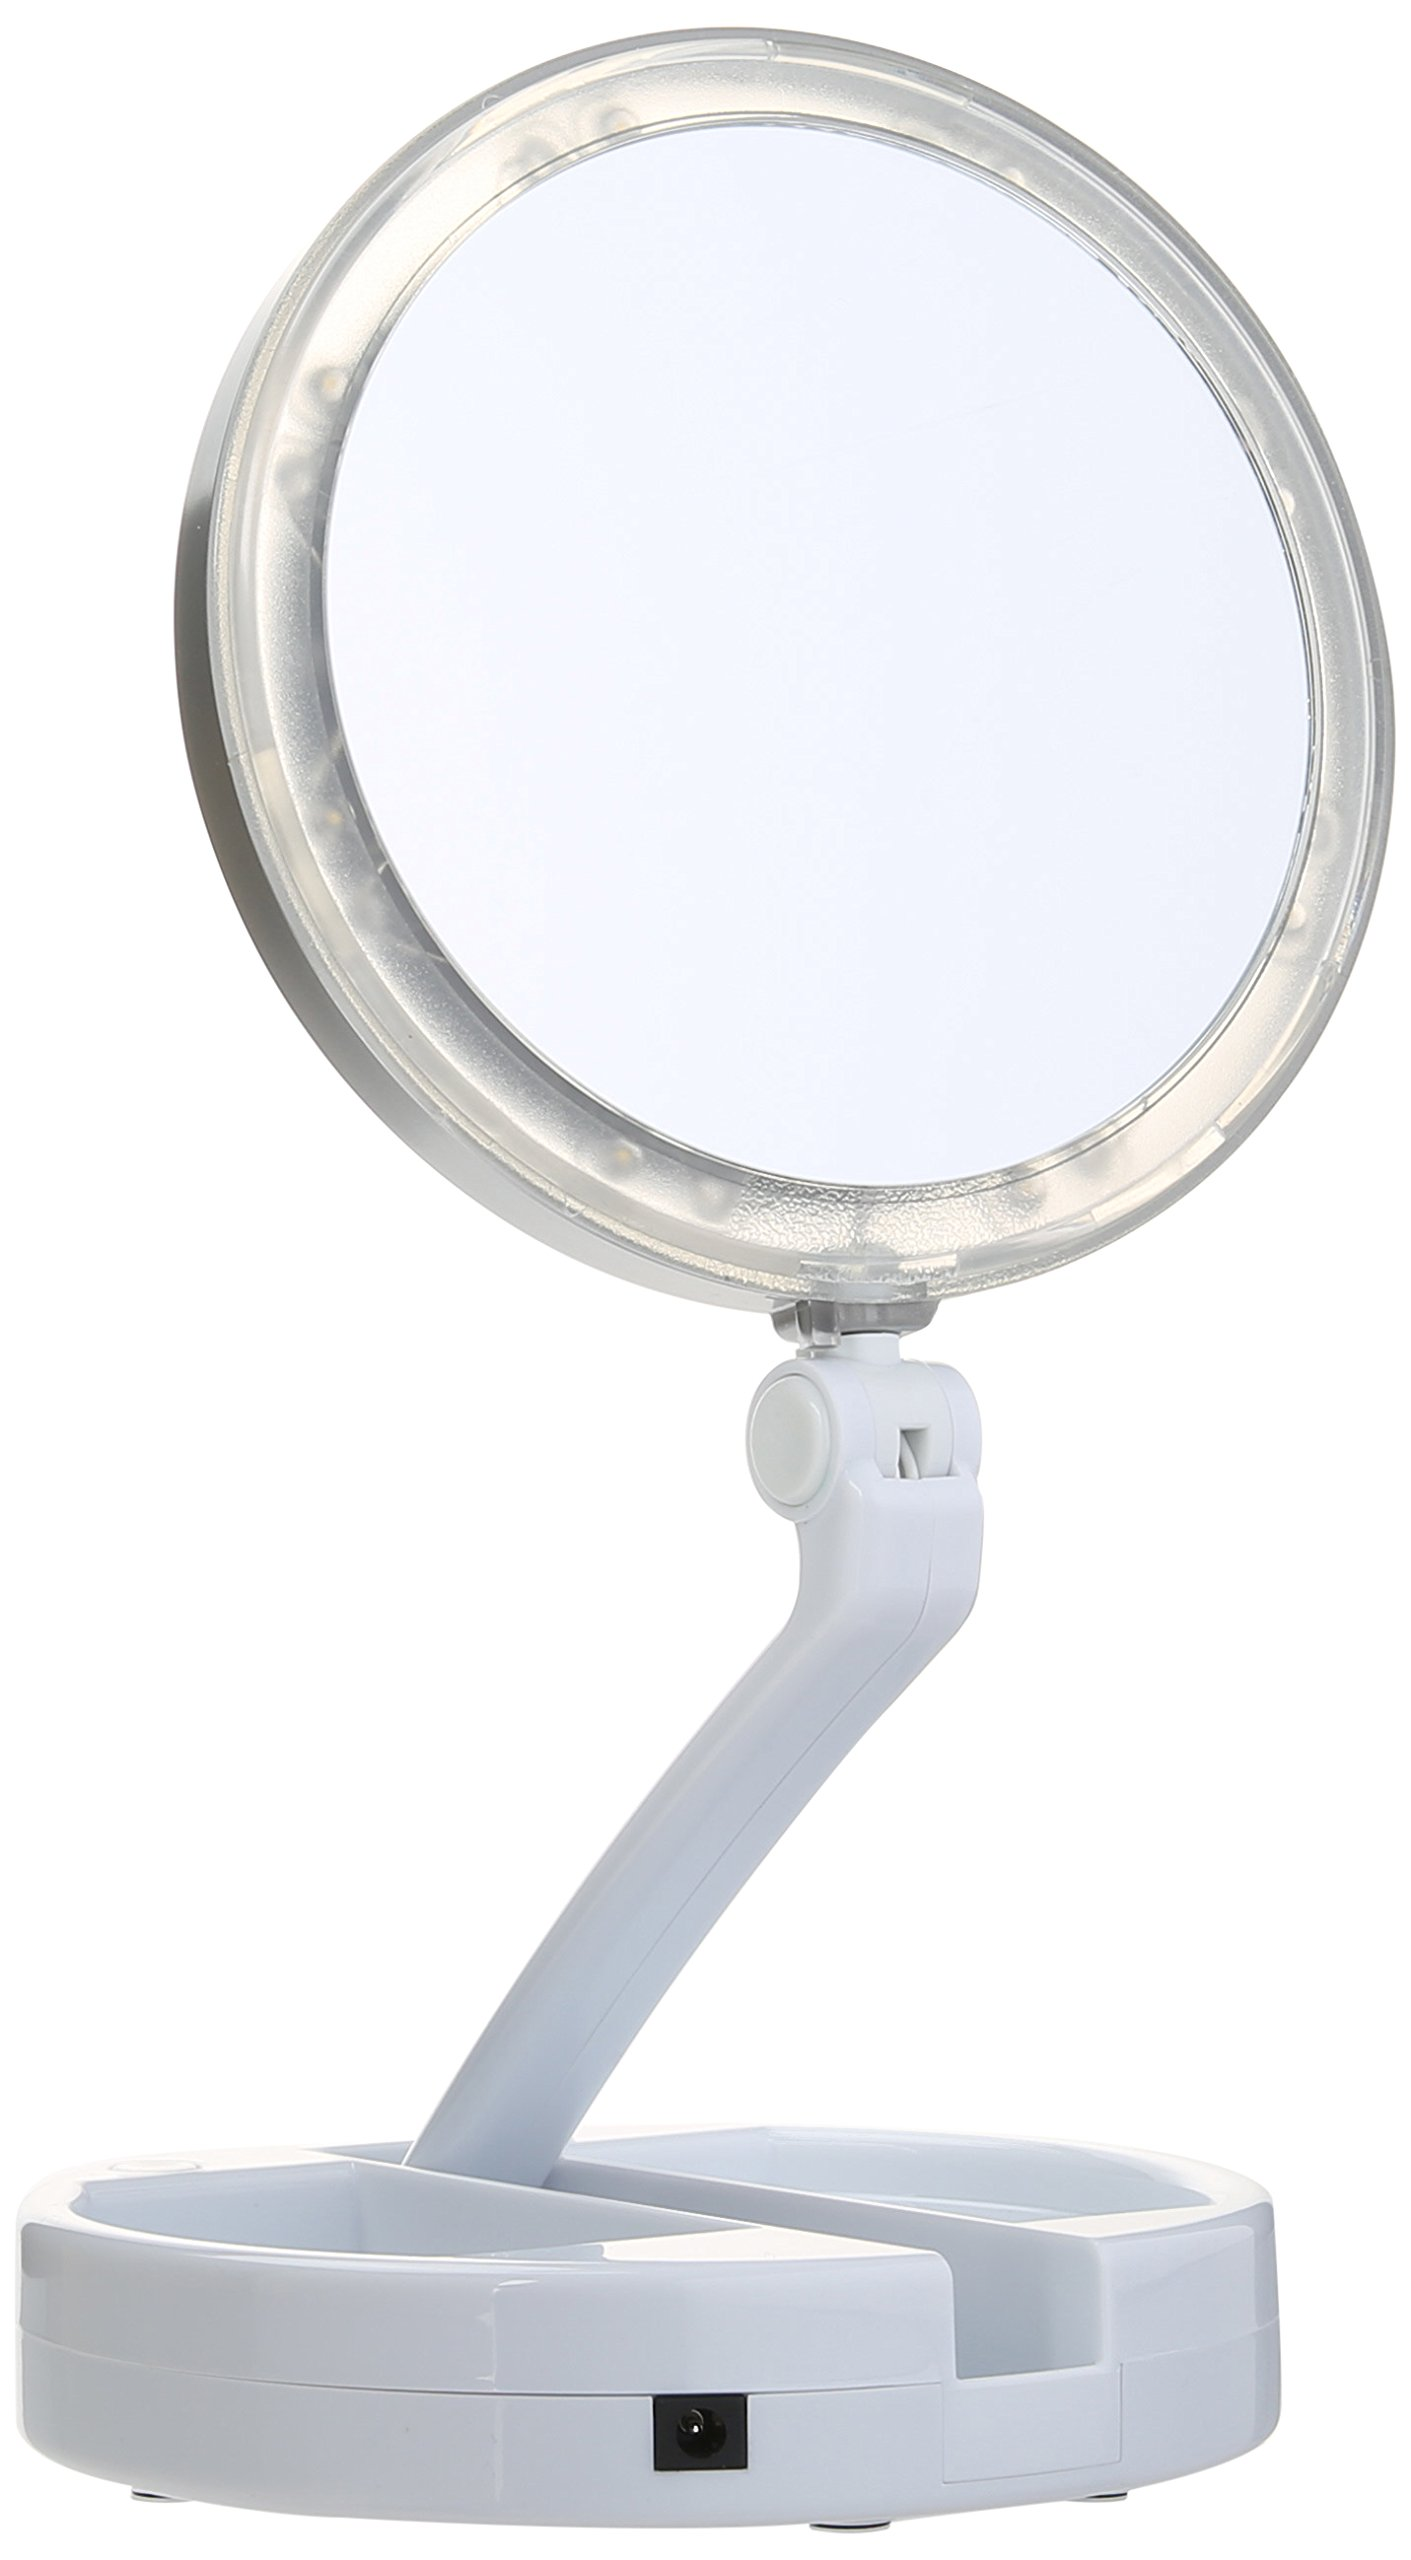 Floxite 7504-12l 12x LED Lighted Folding Vanity and Travel Mirror, White, Frosted White by Floxite (Image #2)